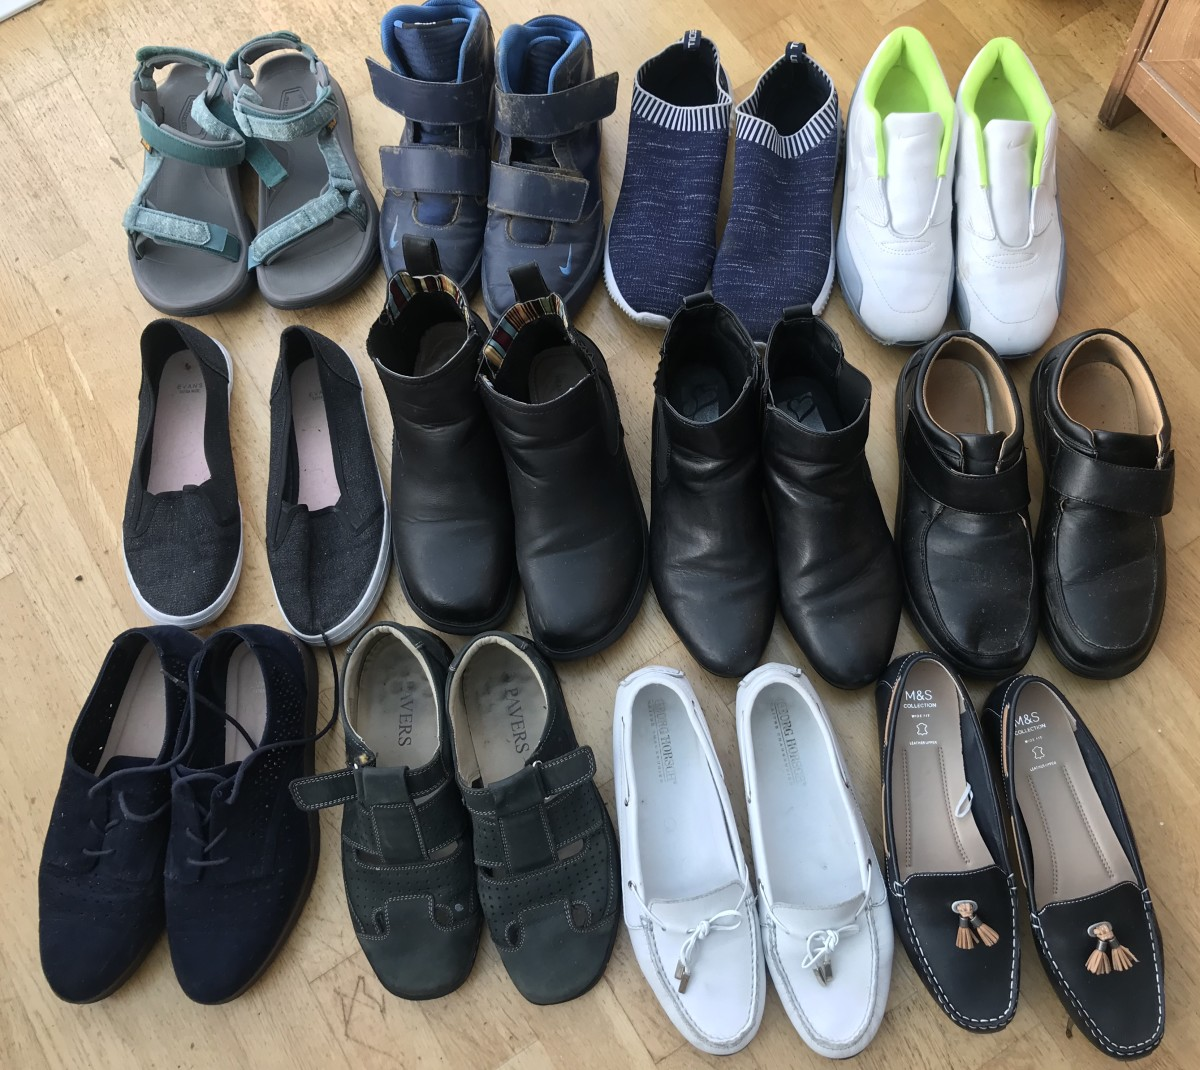 12 Pairs of women's shoes, L to R, top to bottom: 1. Teva sandals, 2, Nike high trainers, 3. Toisebon trainers, 4. Nike Air Max, 5. Evans Skater, 6. ankle boots, 7. Evans boots, 8. work shoes, 9. Brogues, 10. Pavers sandals, 11-12. loafer/boat